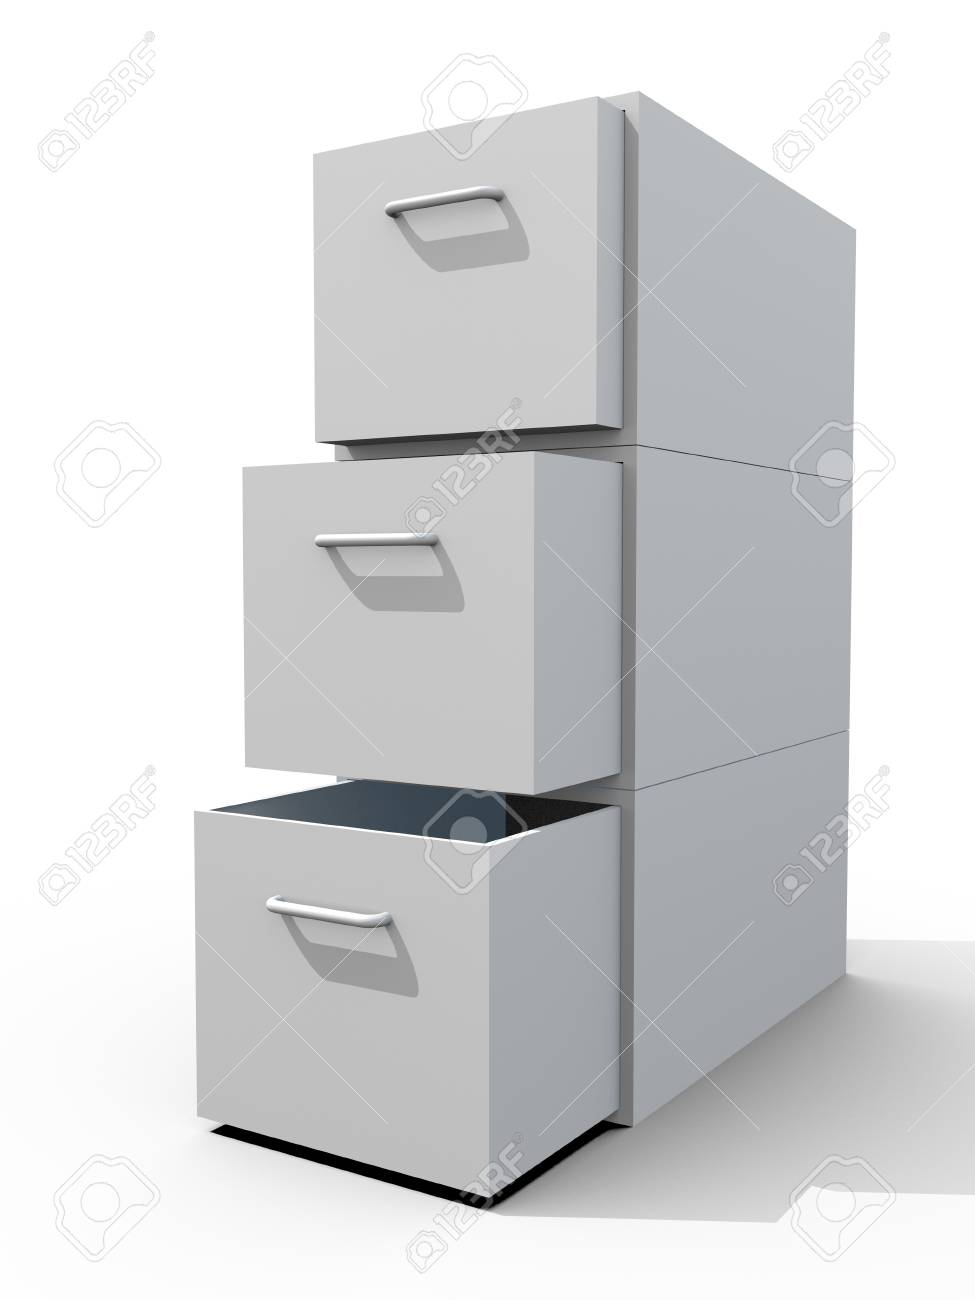 file cabinet 3d on white floor Stock Photo - 10940951